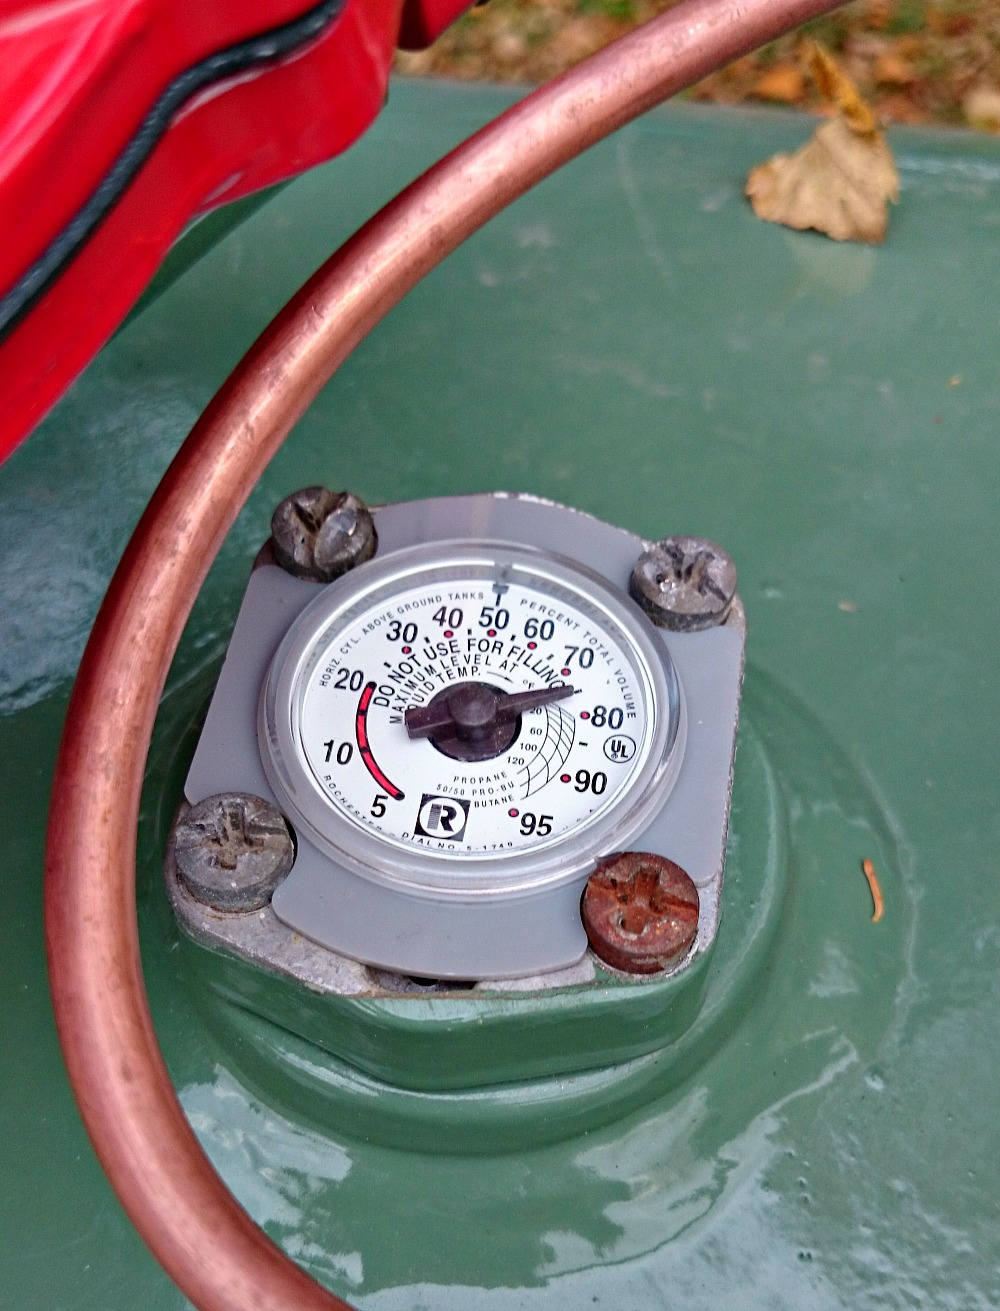 Getting a New Propane Furnace - What to Expect | Dans le ...